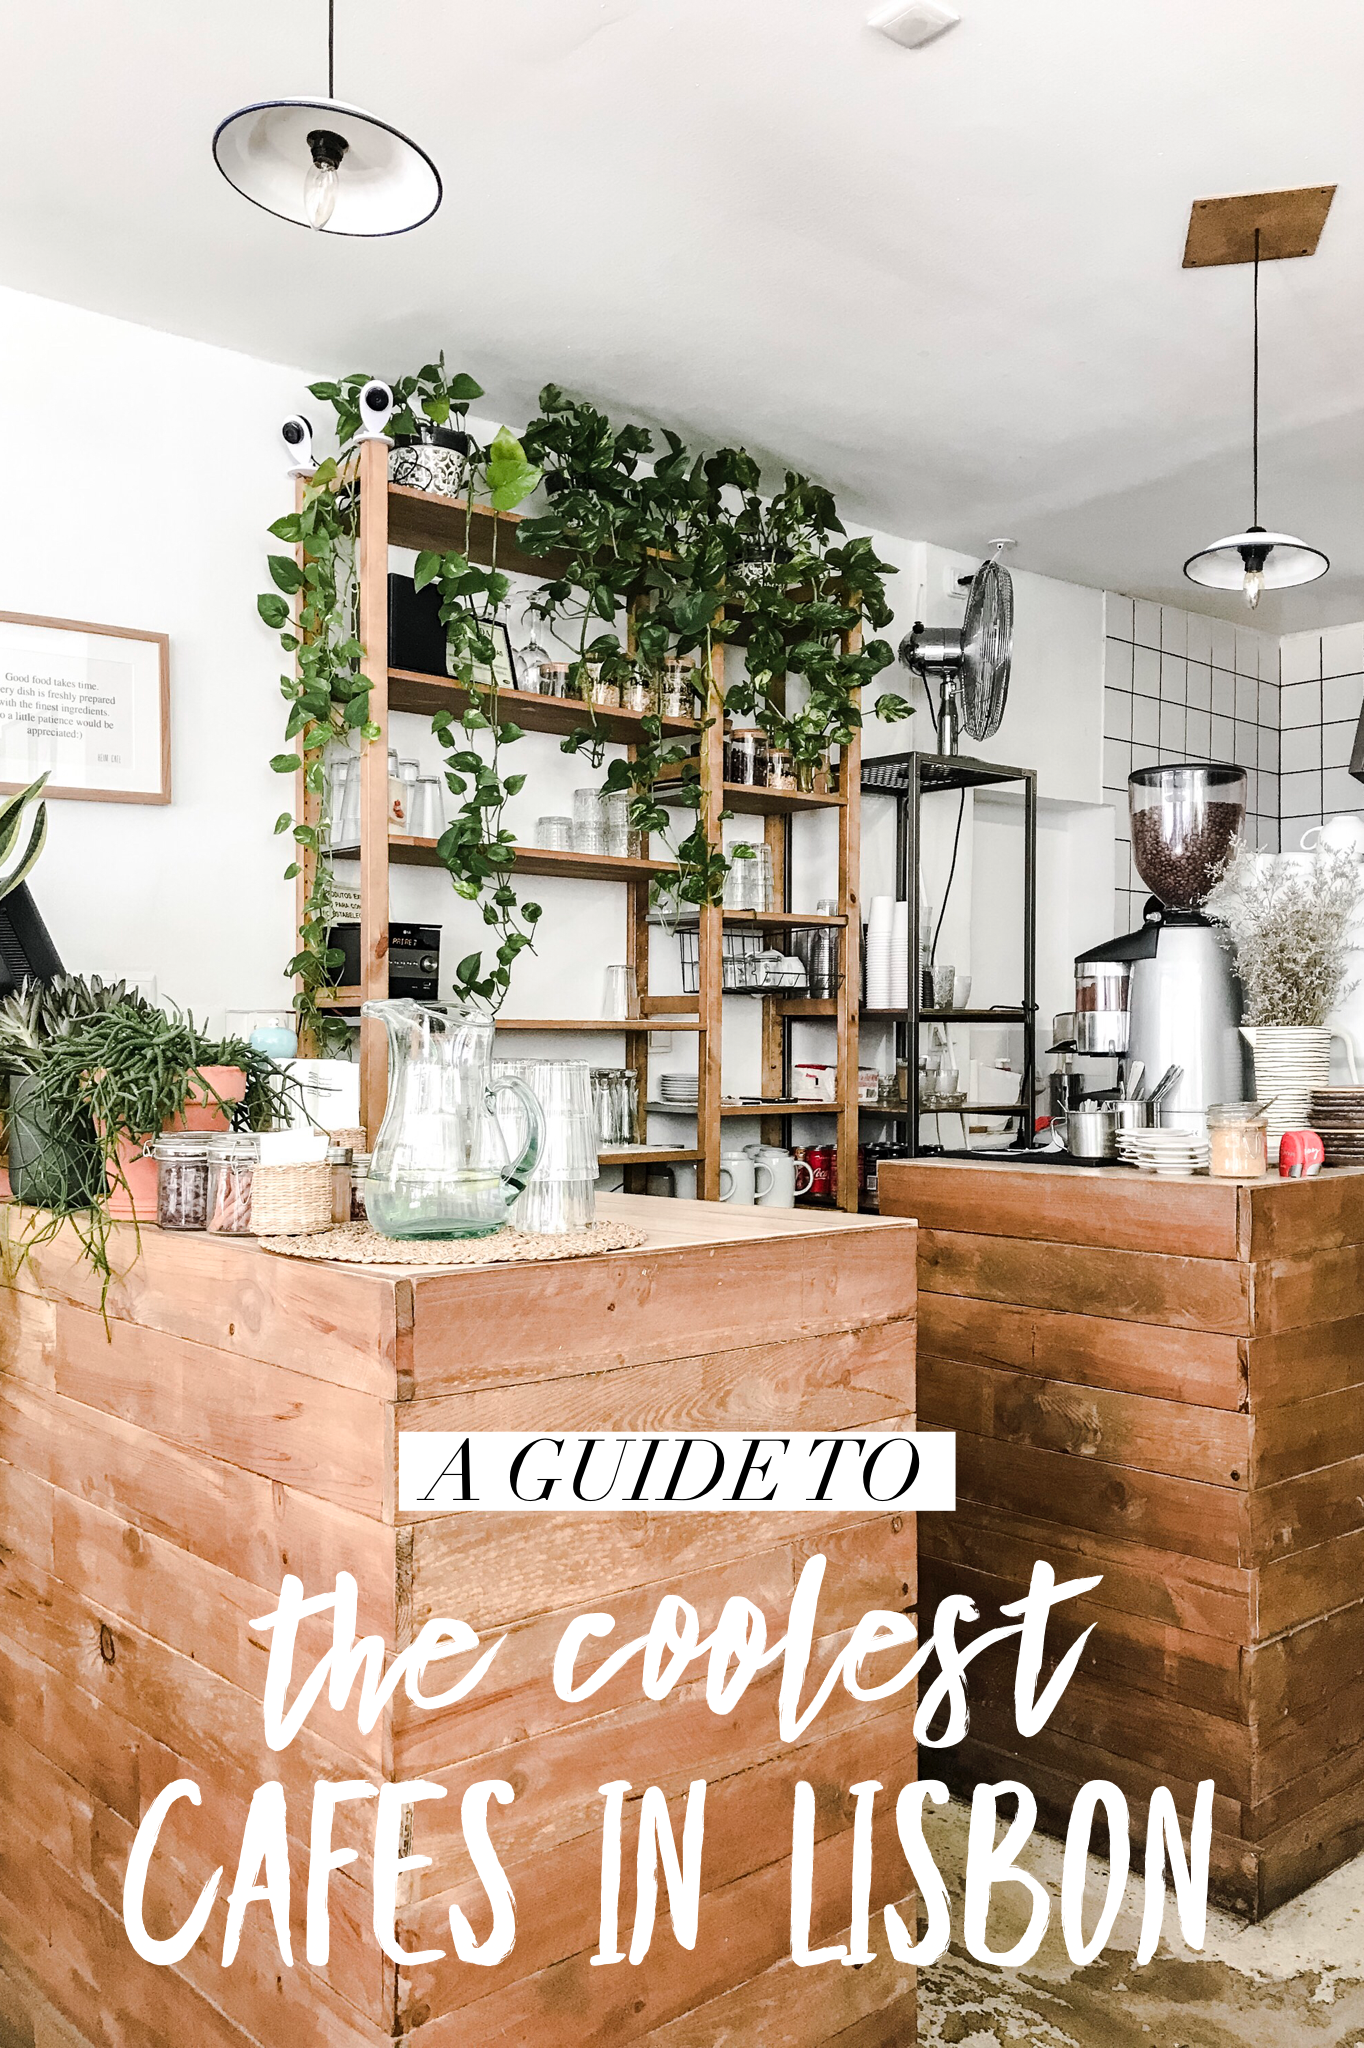 A Stylish Guide to the Coolest Cafes in Lisbon, Portugal - Live Like It's the Weekend #lisbon